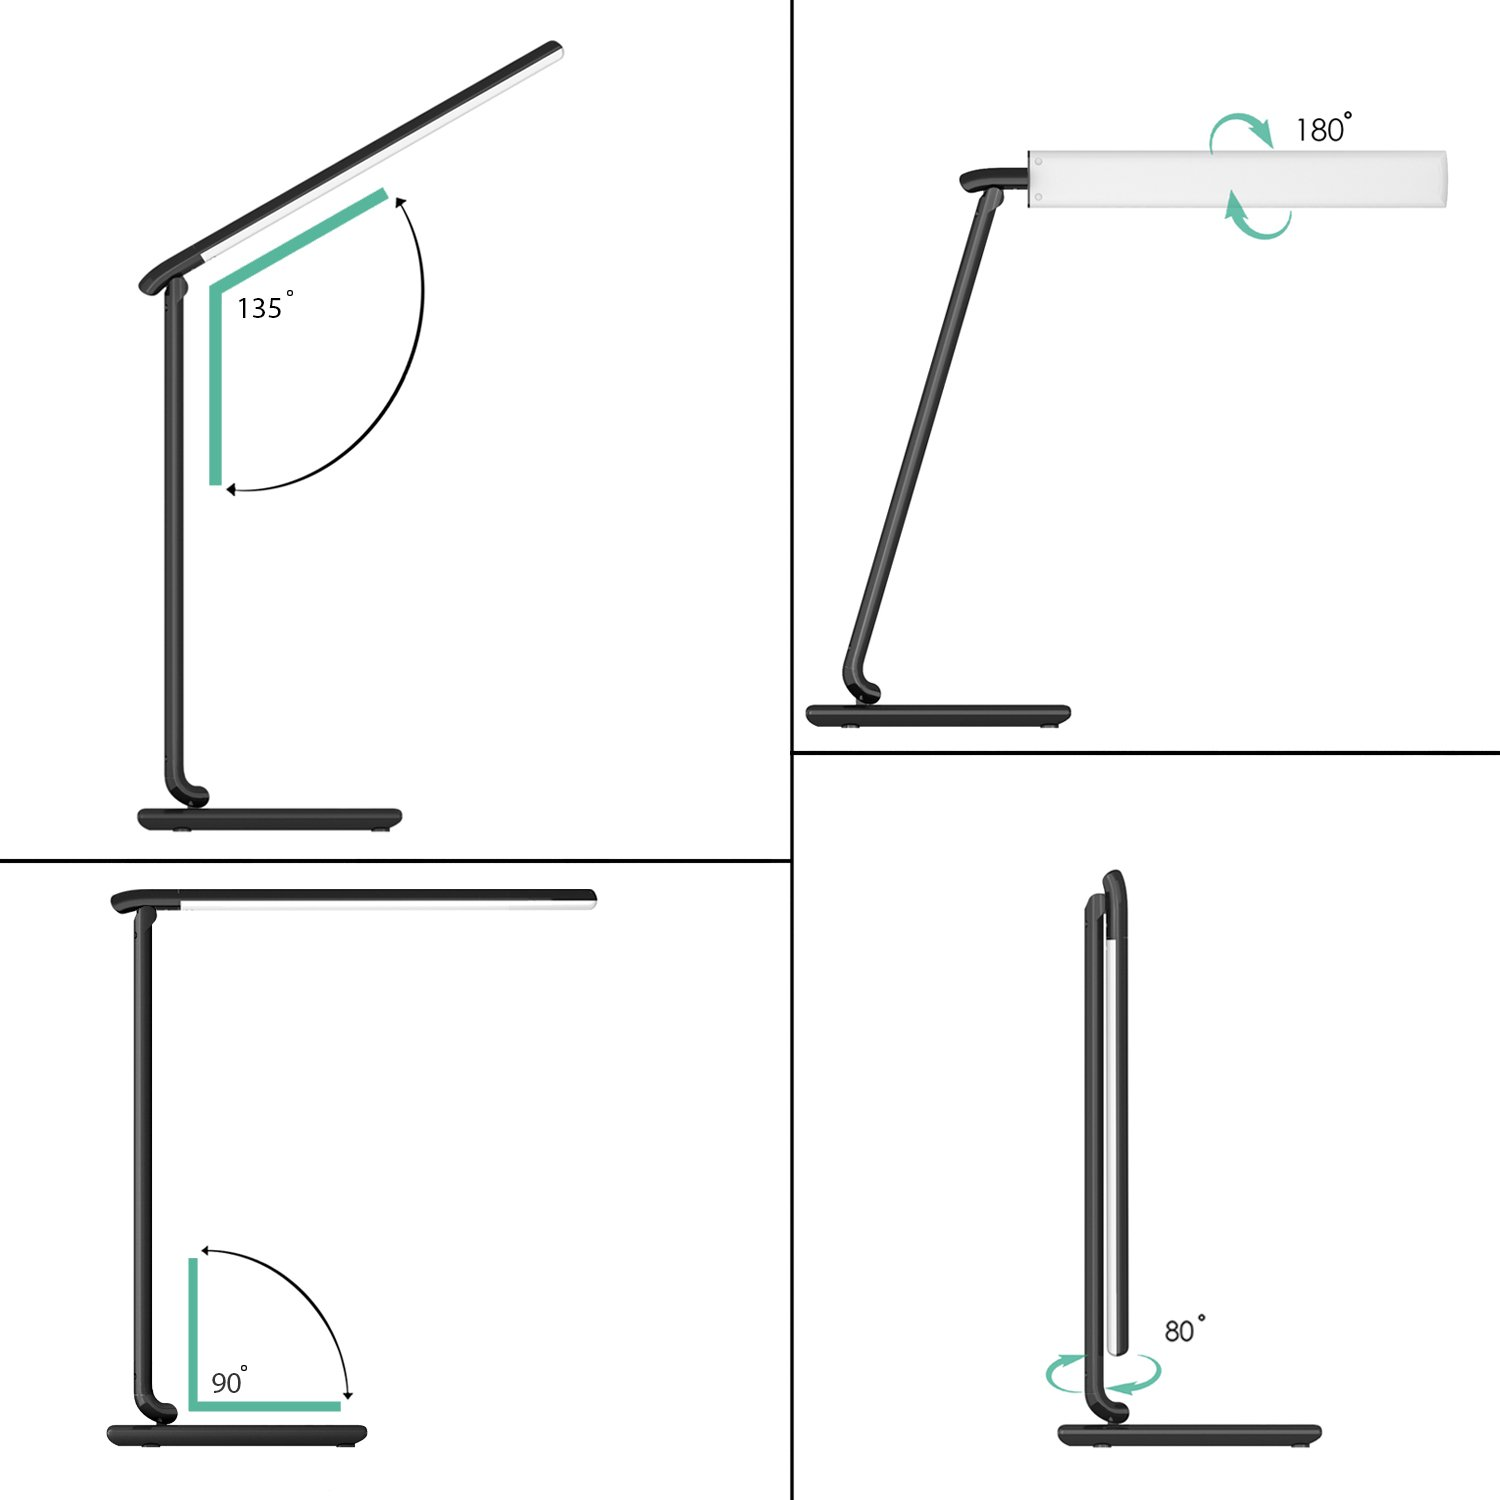 Aluminium Green LED Desk Lamp Light 800/LED Tisch with Touch Control of 5/levels 5/V//1/USB Port A 7/W 12.00 wattsW schwarz G9 Lied of Adjustable Brightness of the Color Temperature and Timer